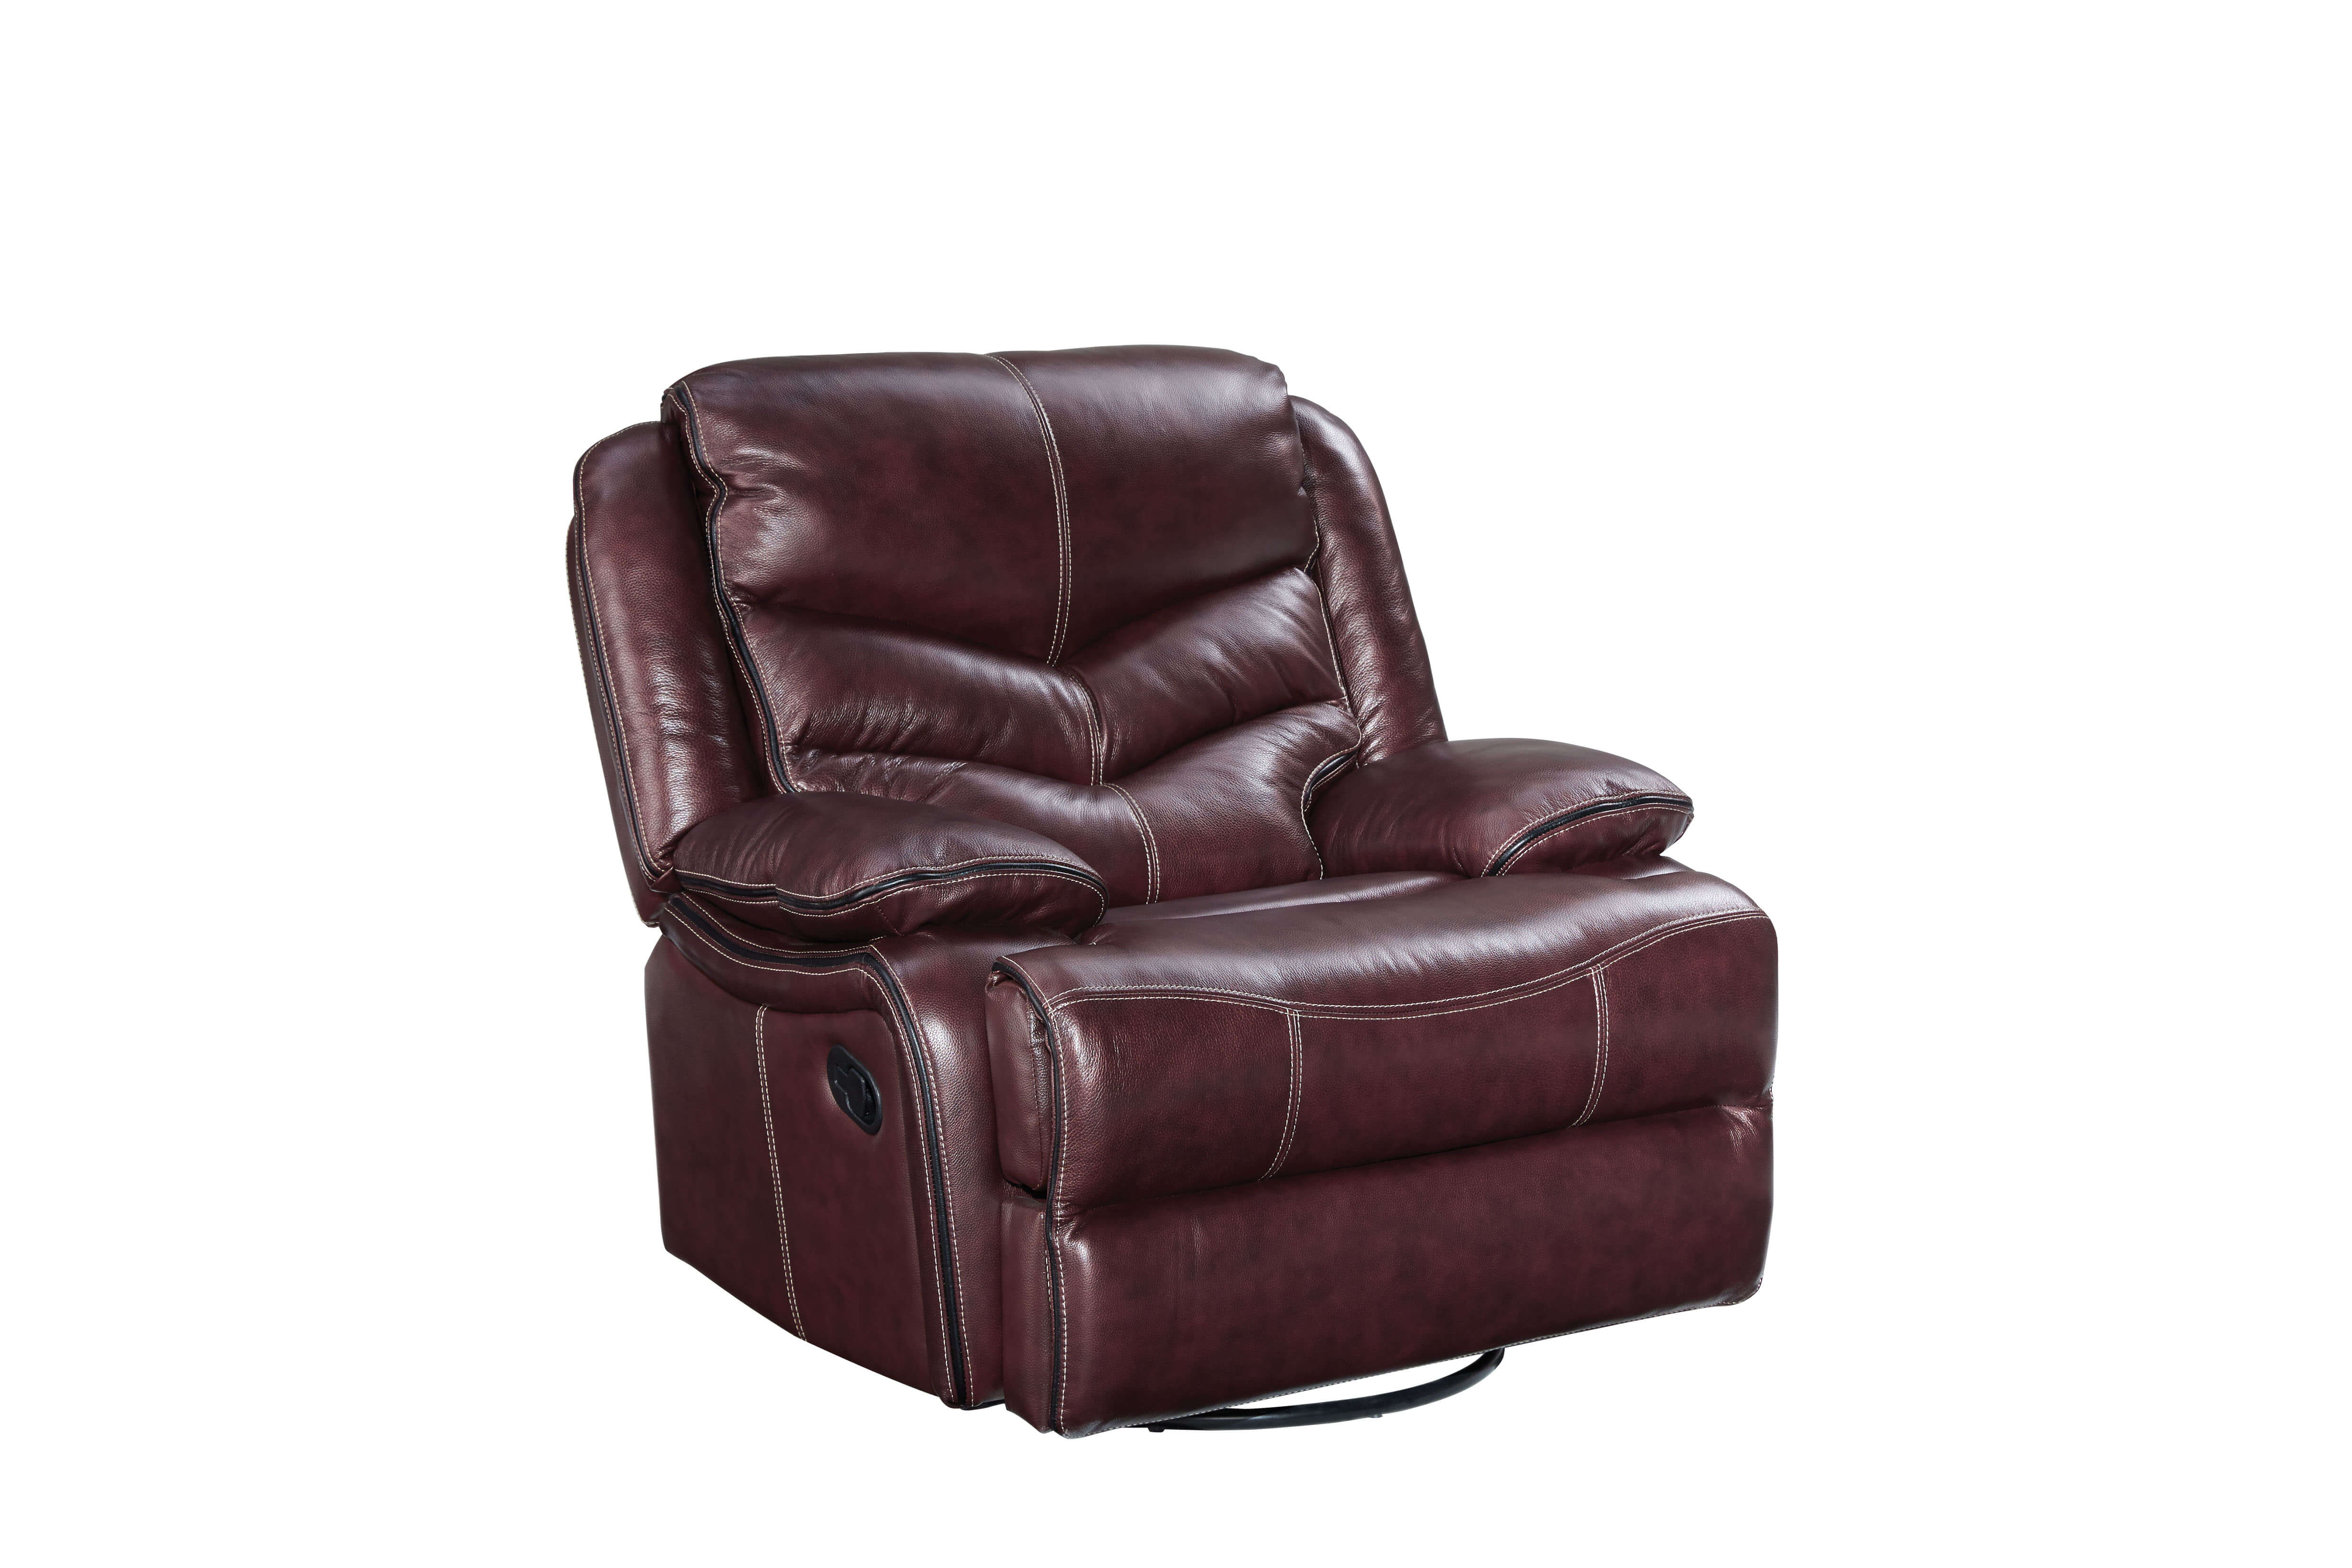 Denali Leather Reclining Sofa And Loveseat By Standard